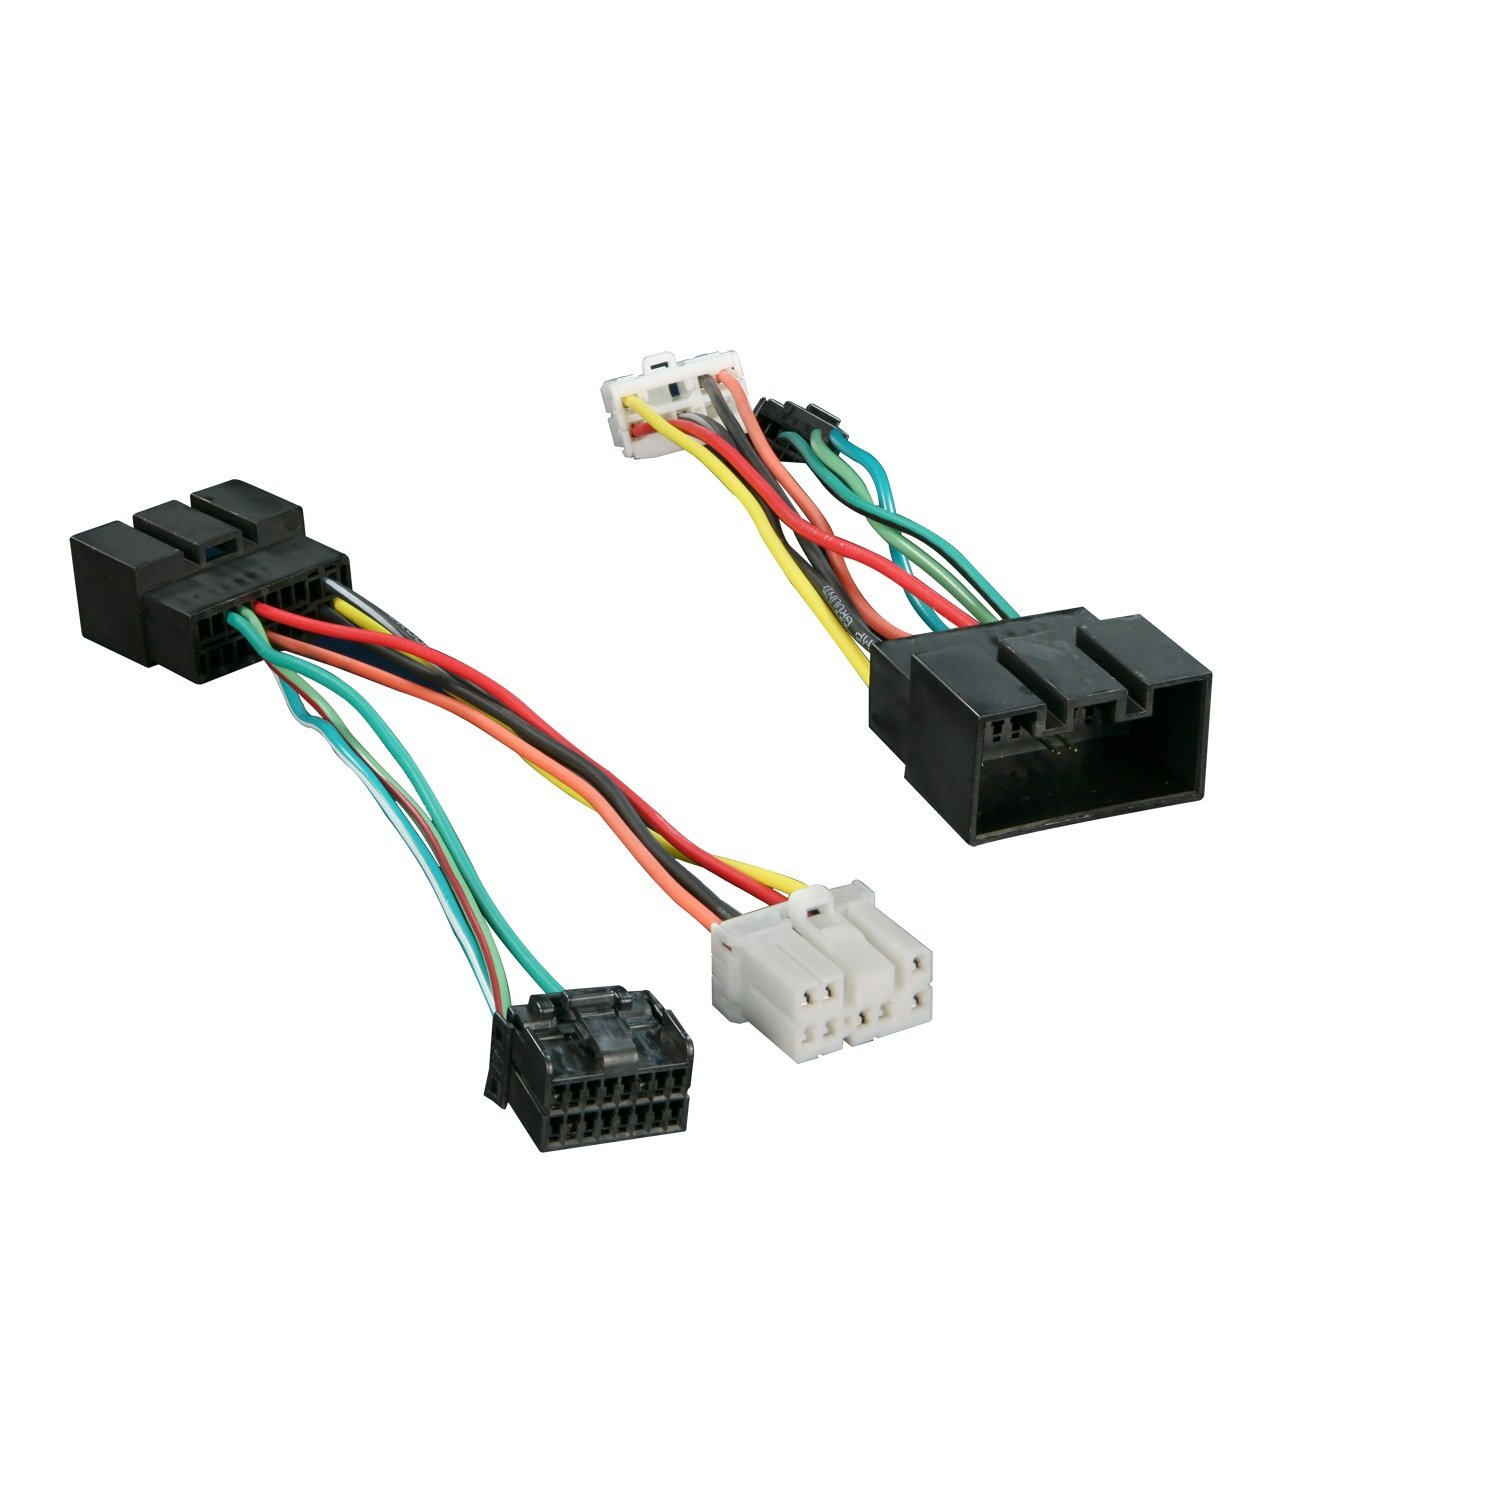 61q F7g5qCL._SL1500_ amazon com metra 70 5716 turbowire car stereo wiring harness  at reclaimingppi.co